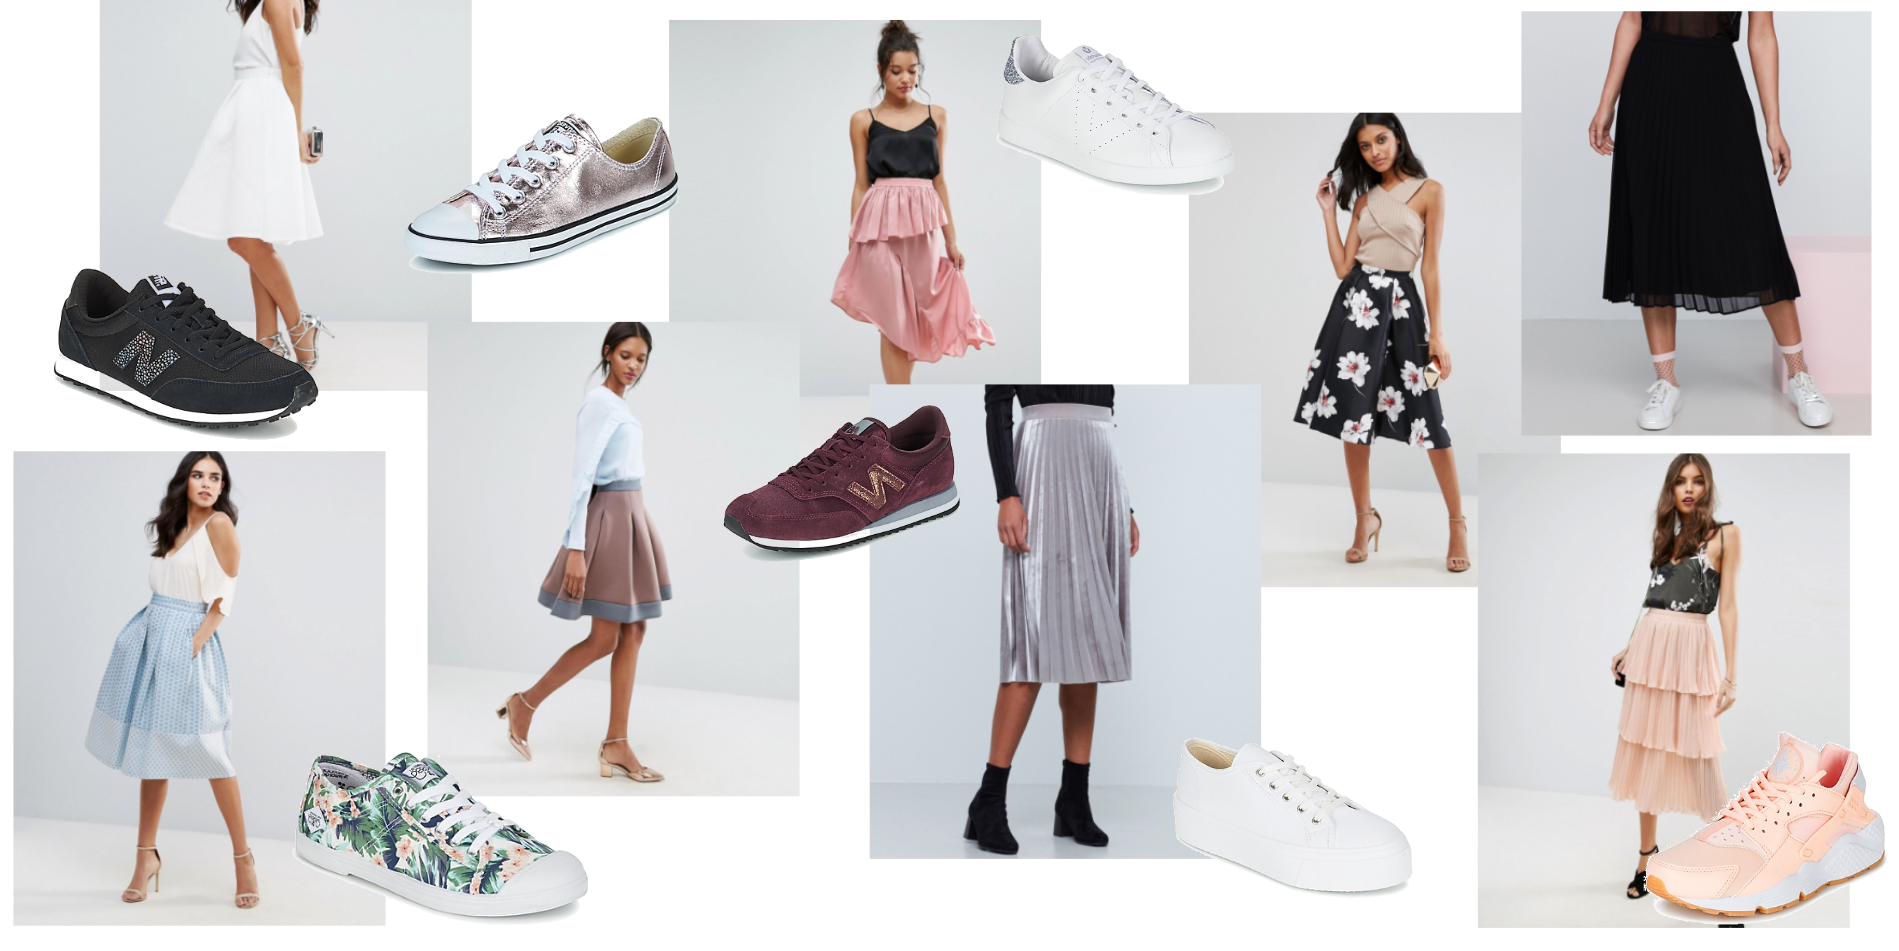 FASHION INSPIRATION // SKIRTS & SNEAKS